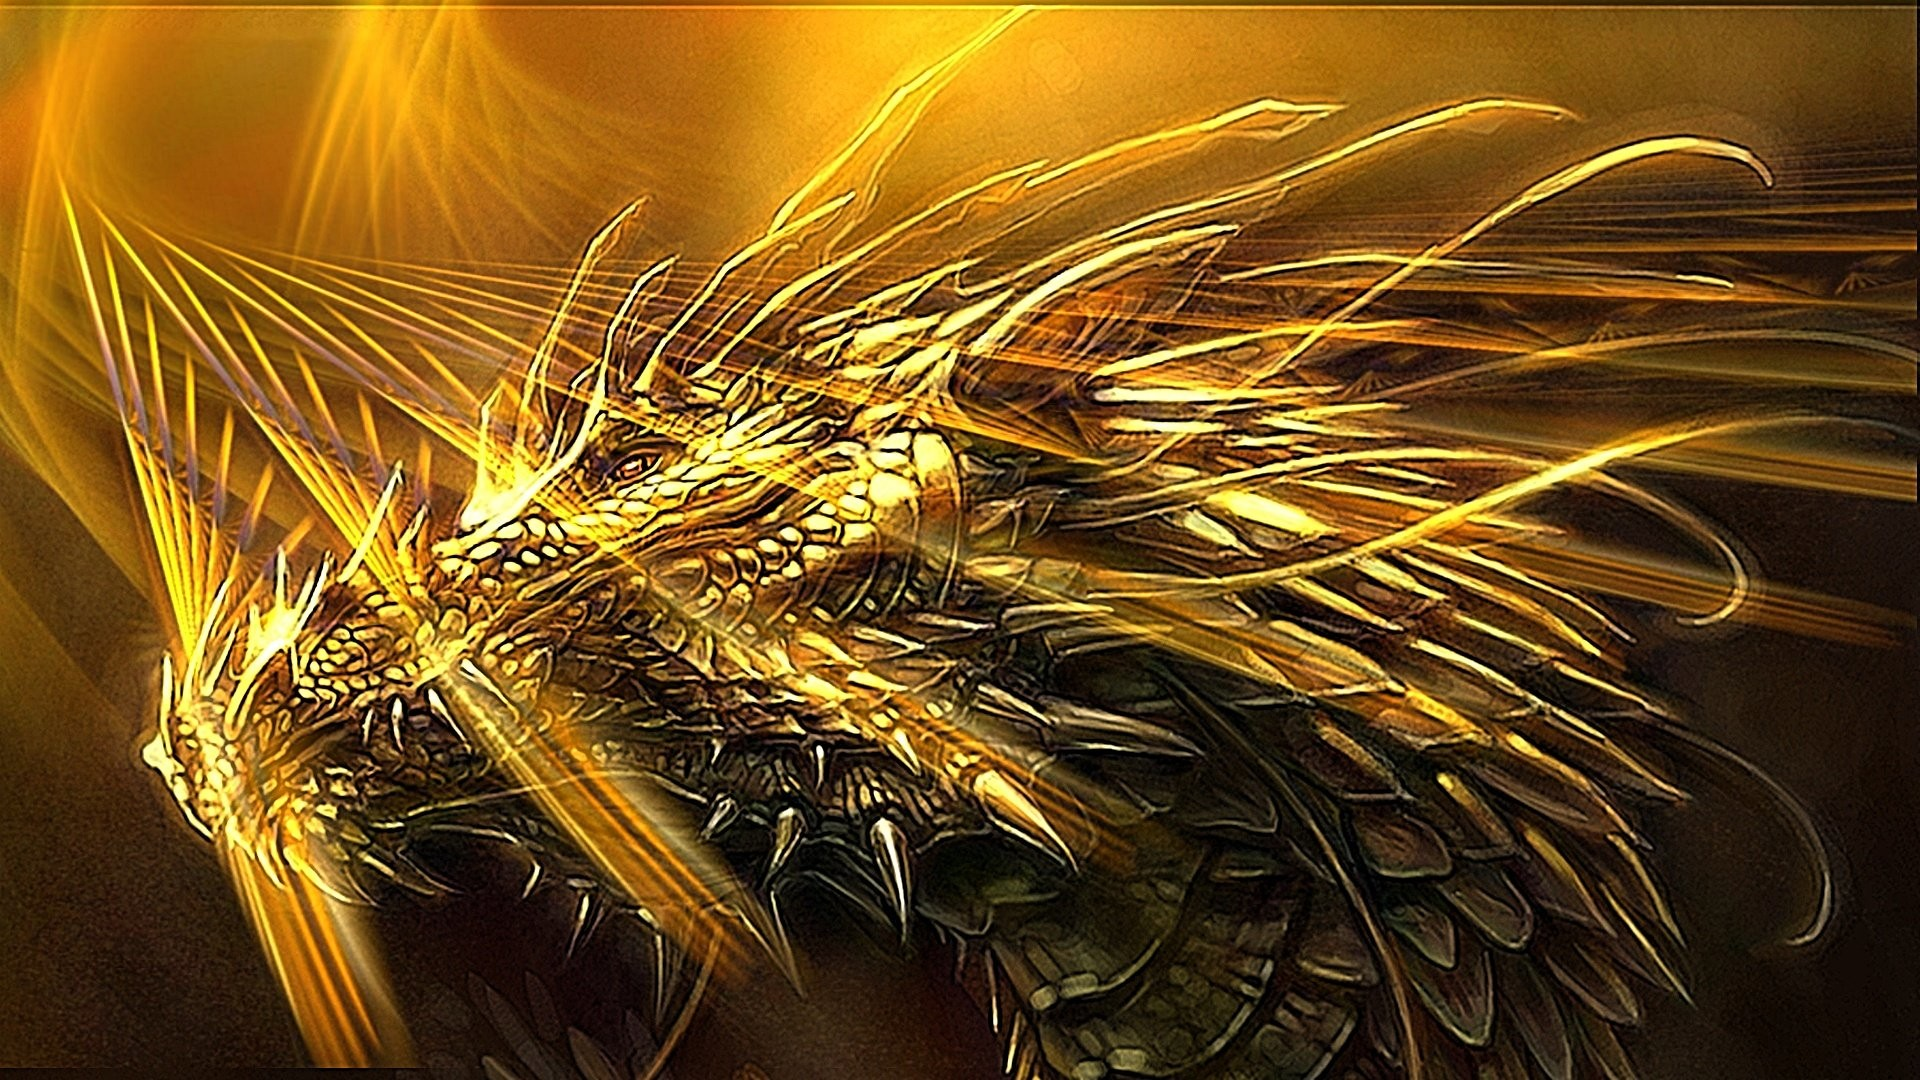 Res: 1920x1080, golden dragon 566070